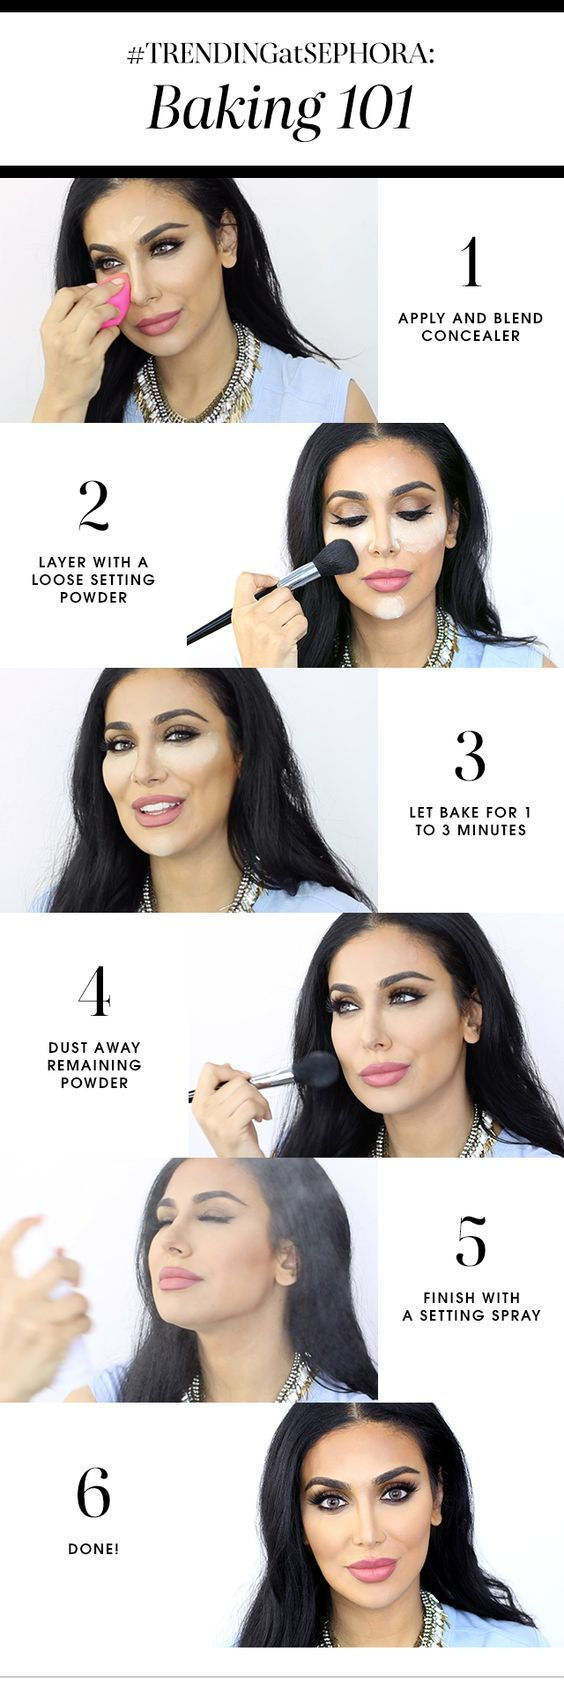 It's hard being a girl and dealing with makeup can be a real struggle sometimes. But, here are some life-changing makeup tips you might not know that will make your life a little easier. giphy.com 1. Use toilet seat covers as blotting paper. Ever run out of blotting paper when your face is super oily? It's […]